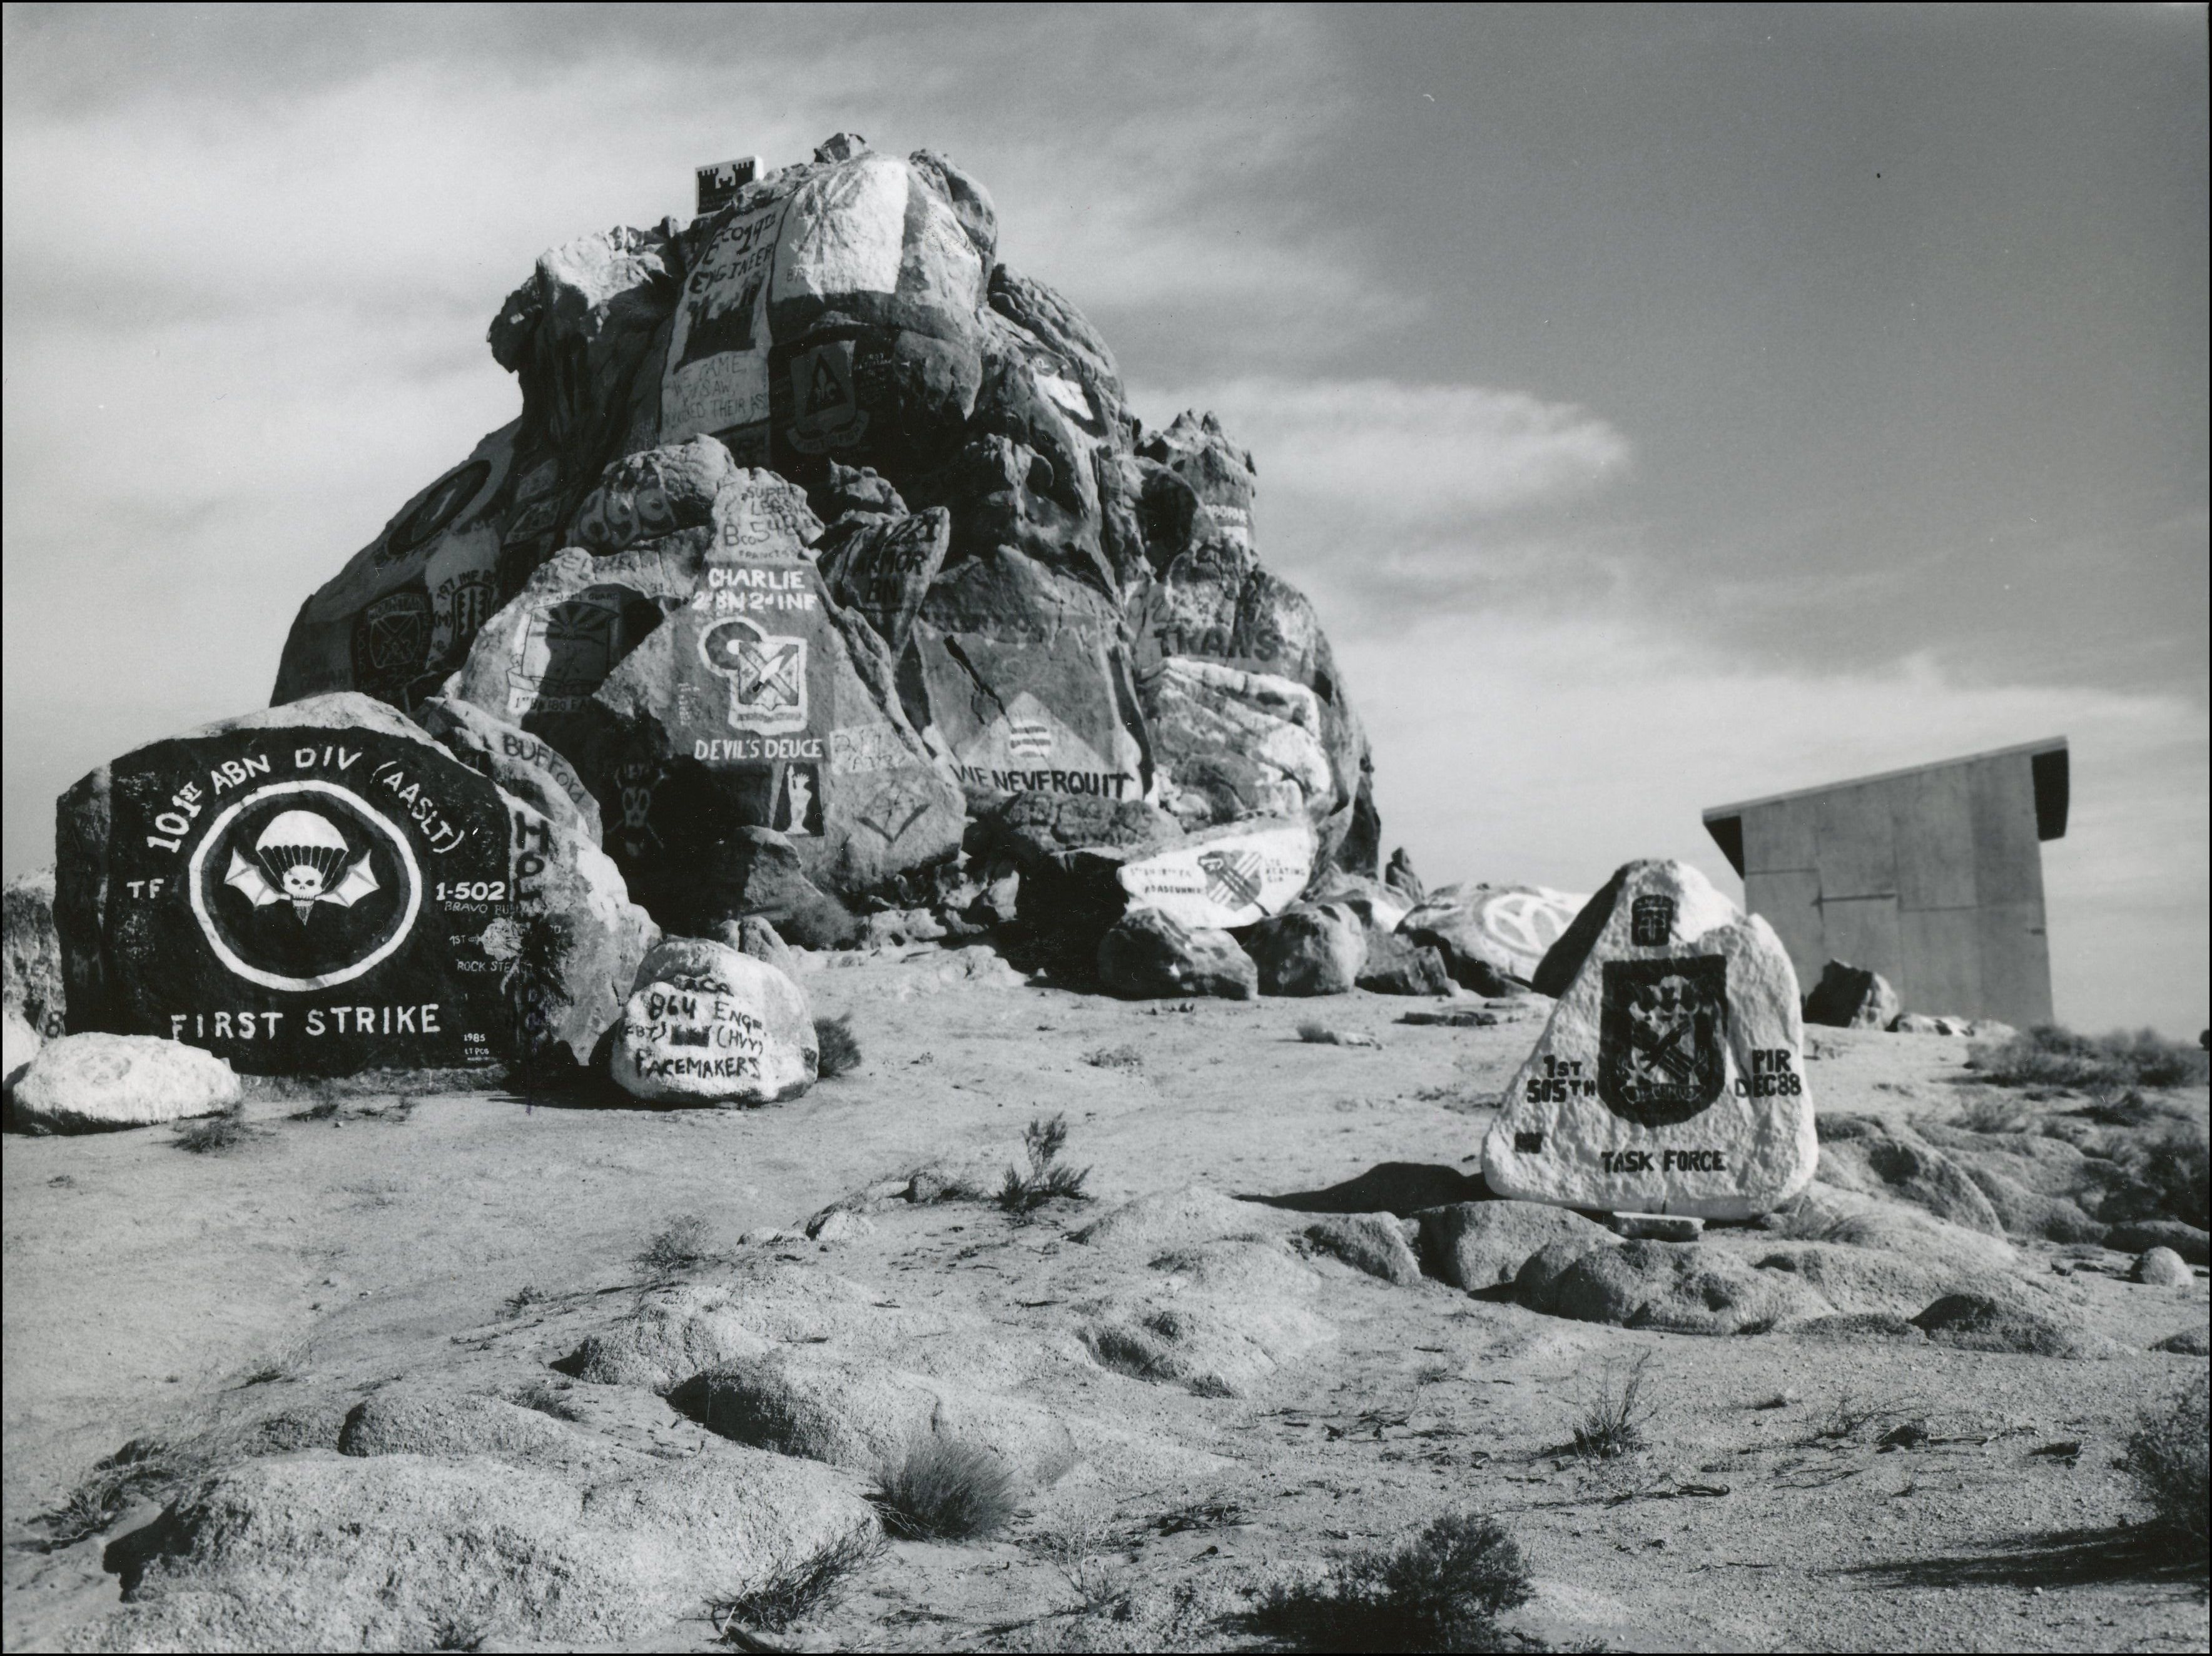 Rock mound and smaller rocks surrounding. Paintings on the rocks of military strikes and other military signage